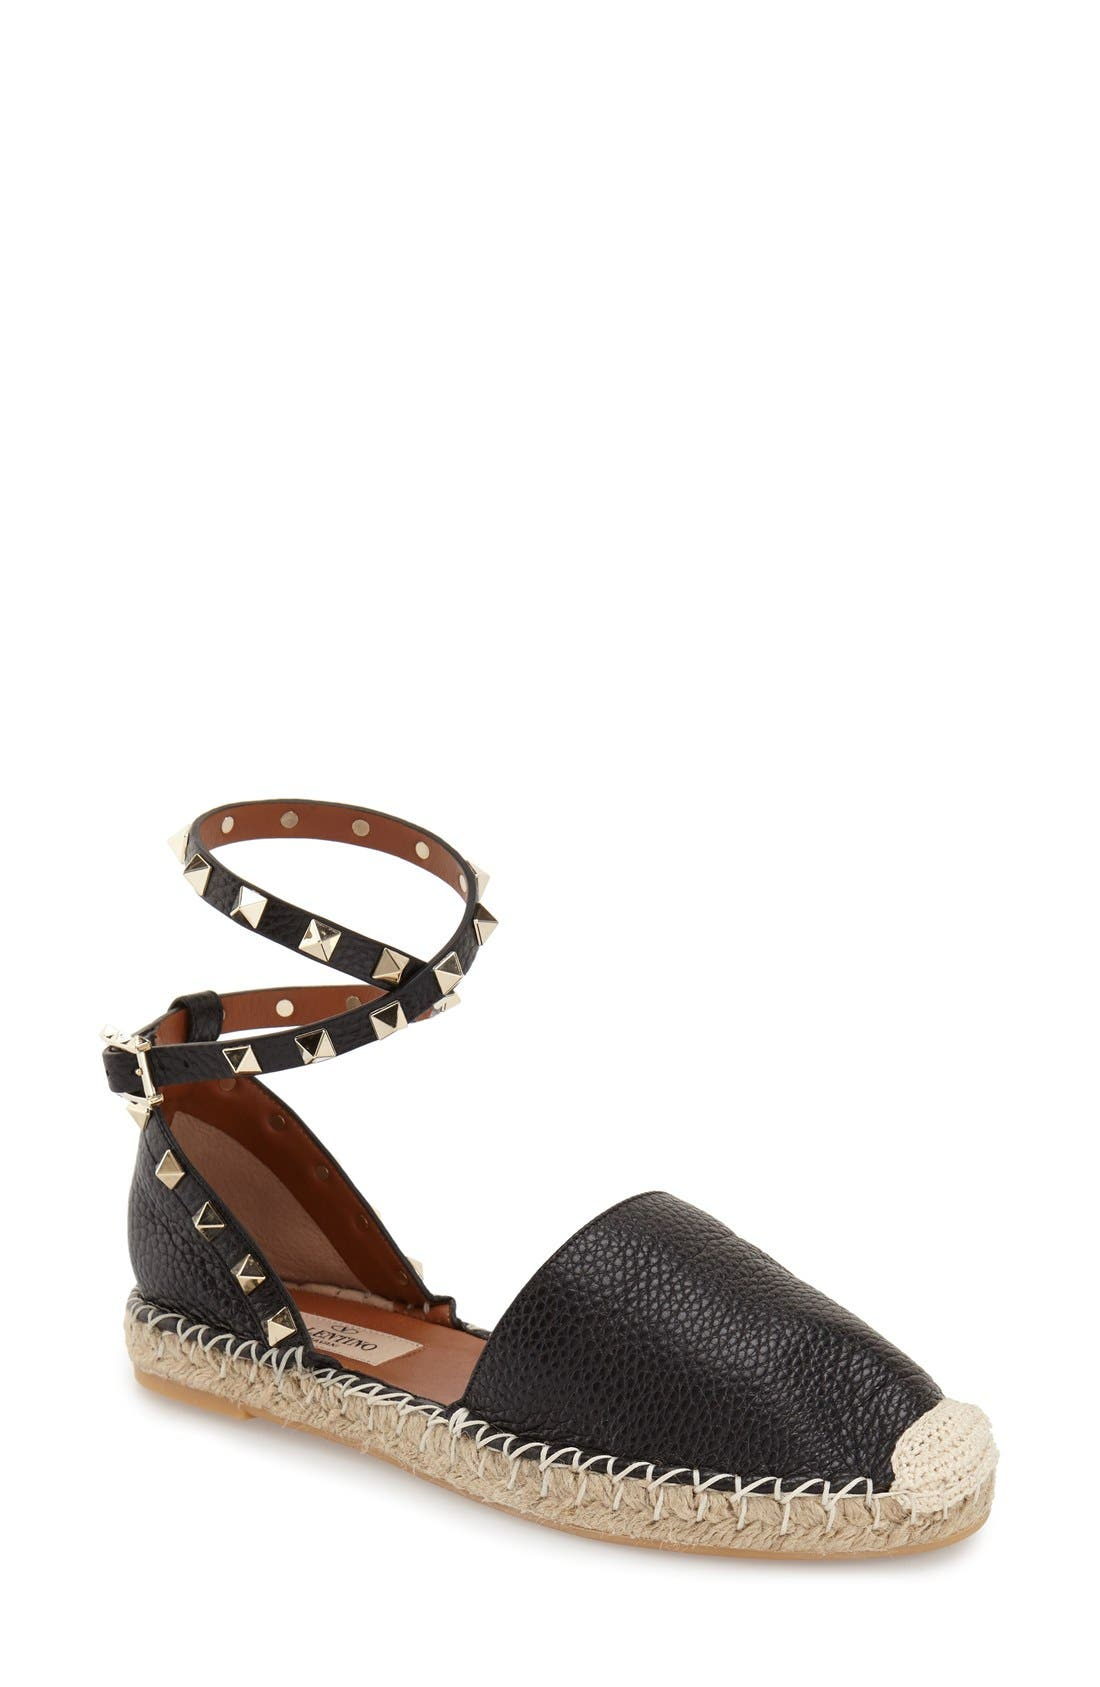 Alternate Image 1 Selected - VALENTINO GARAVANI 'Rockstud' Ankle Strap Espadrille (Women)